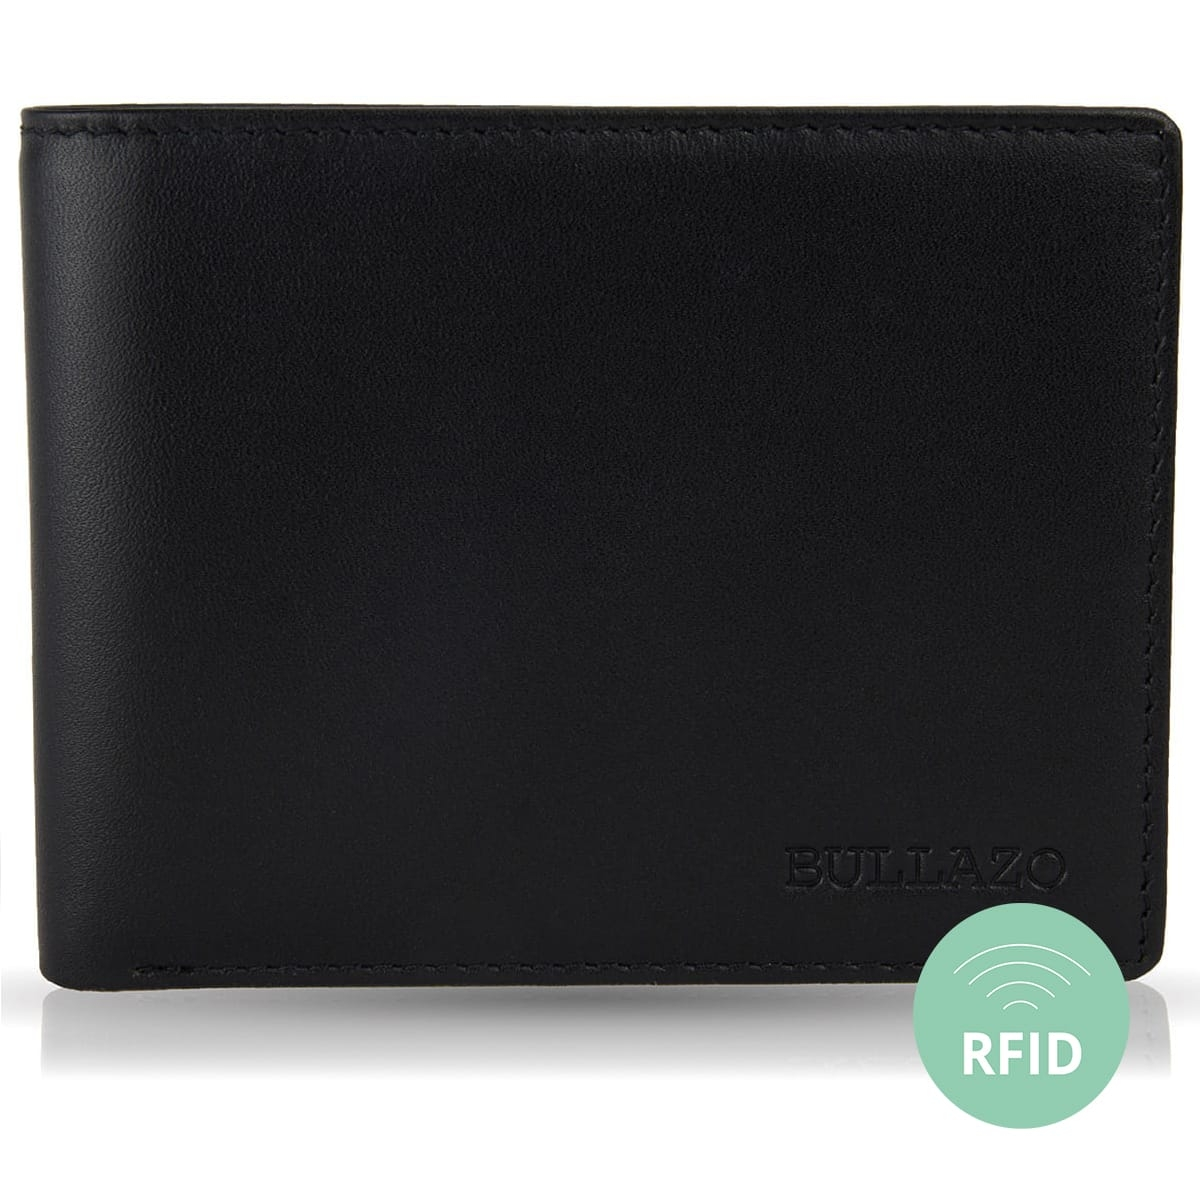 8ef59a498973 Ultra slim Wallet for Men without coin pocket. RFID safe. | BULLAZO